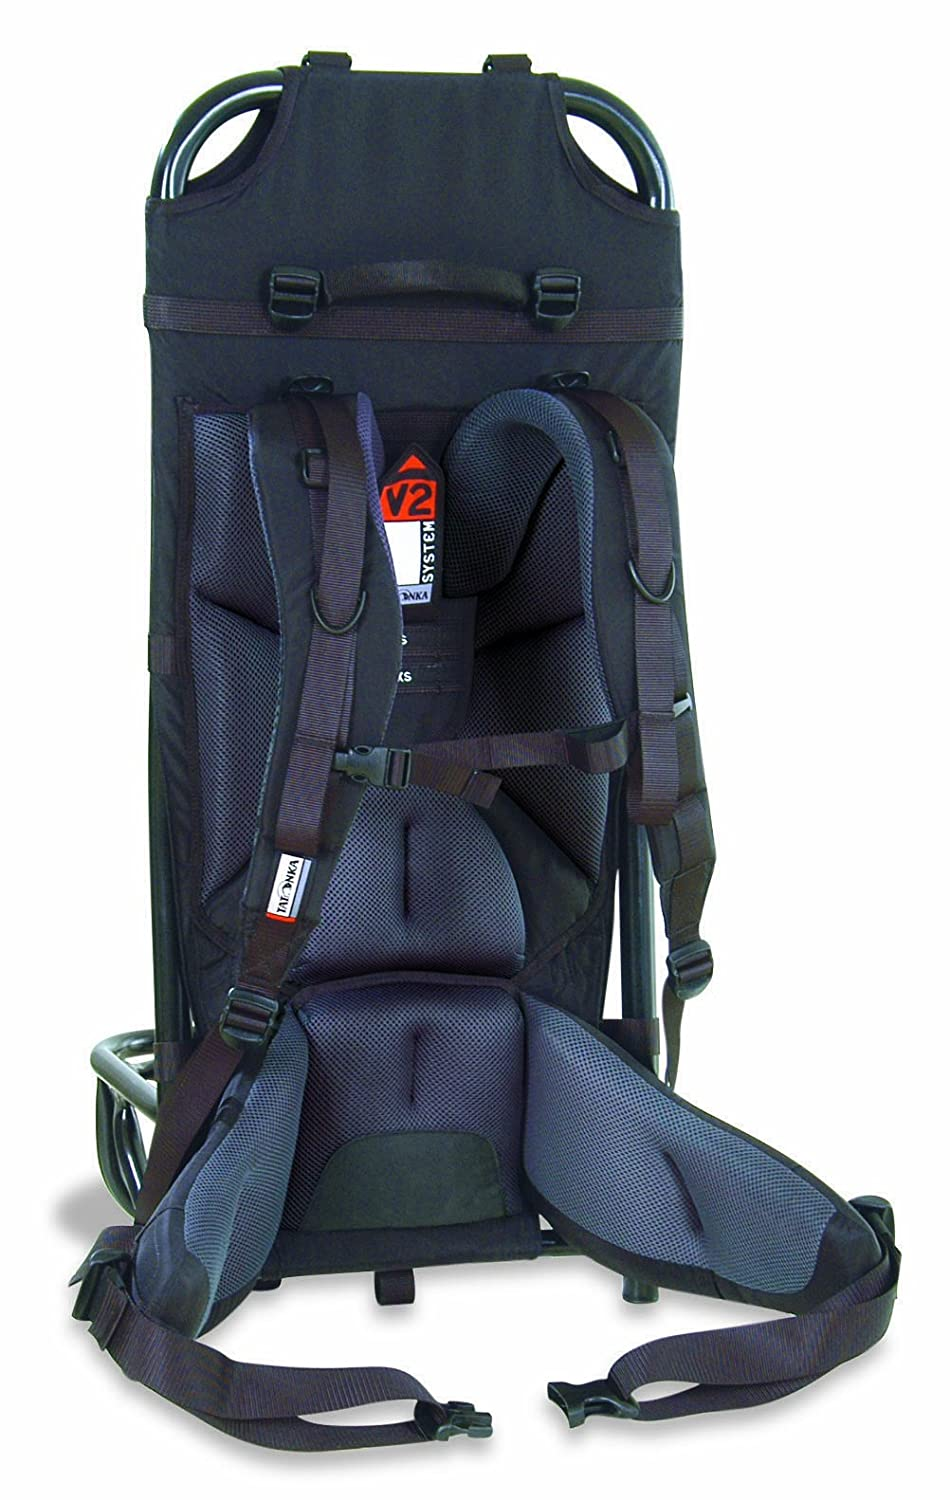 Amazon.com : Tatonka hiking bag load carrier black : Internal Frame ...